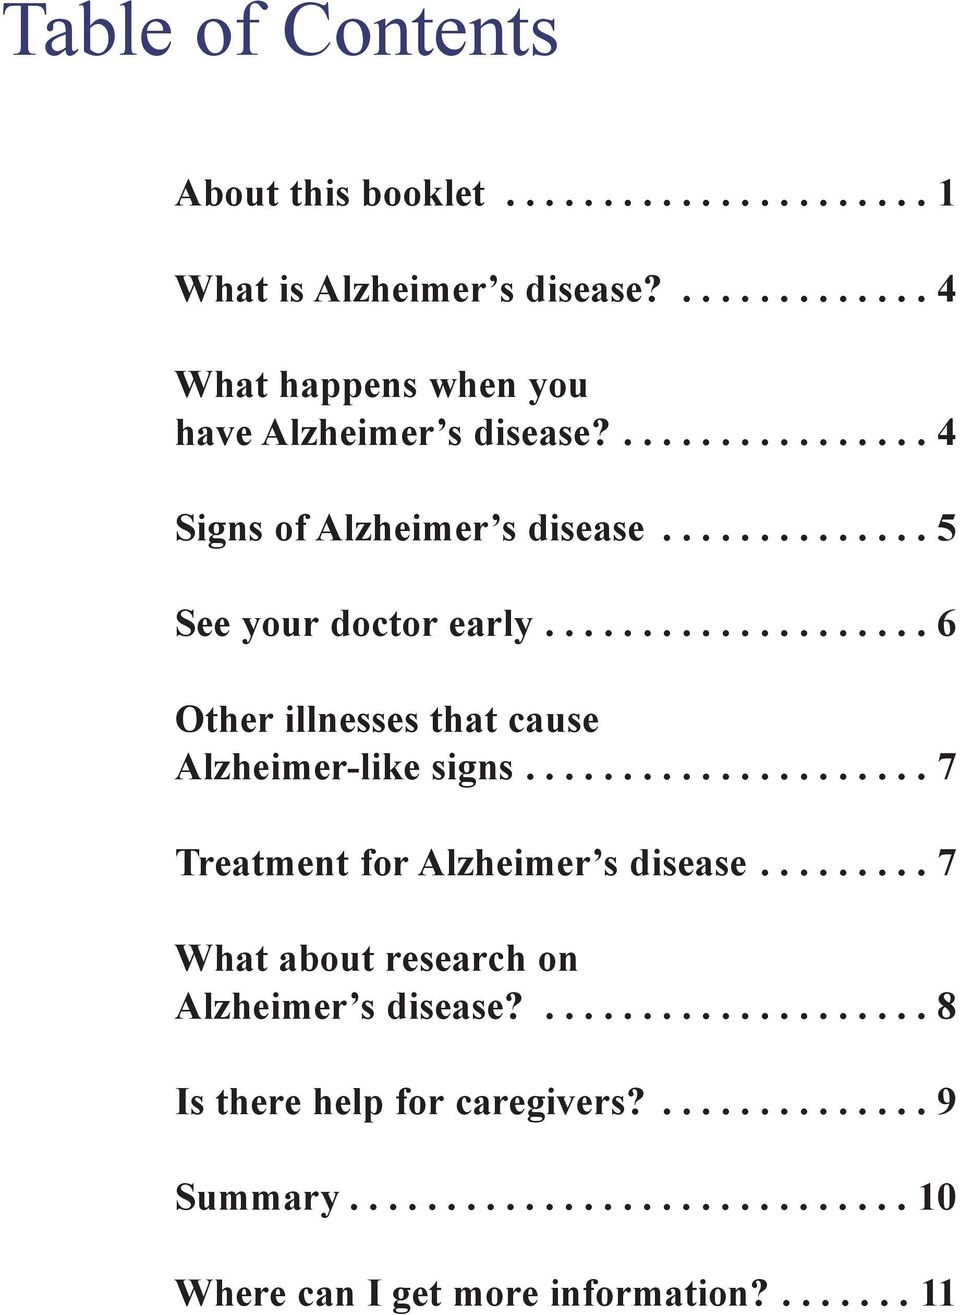 .................... 7 Treatment for Alzheimer s disease......... 7 What about research on Alzheimer s disease?.................... 8 Is there help for caregivers?